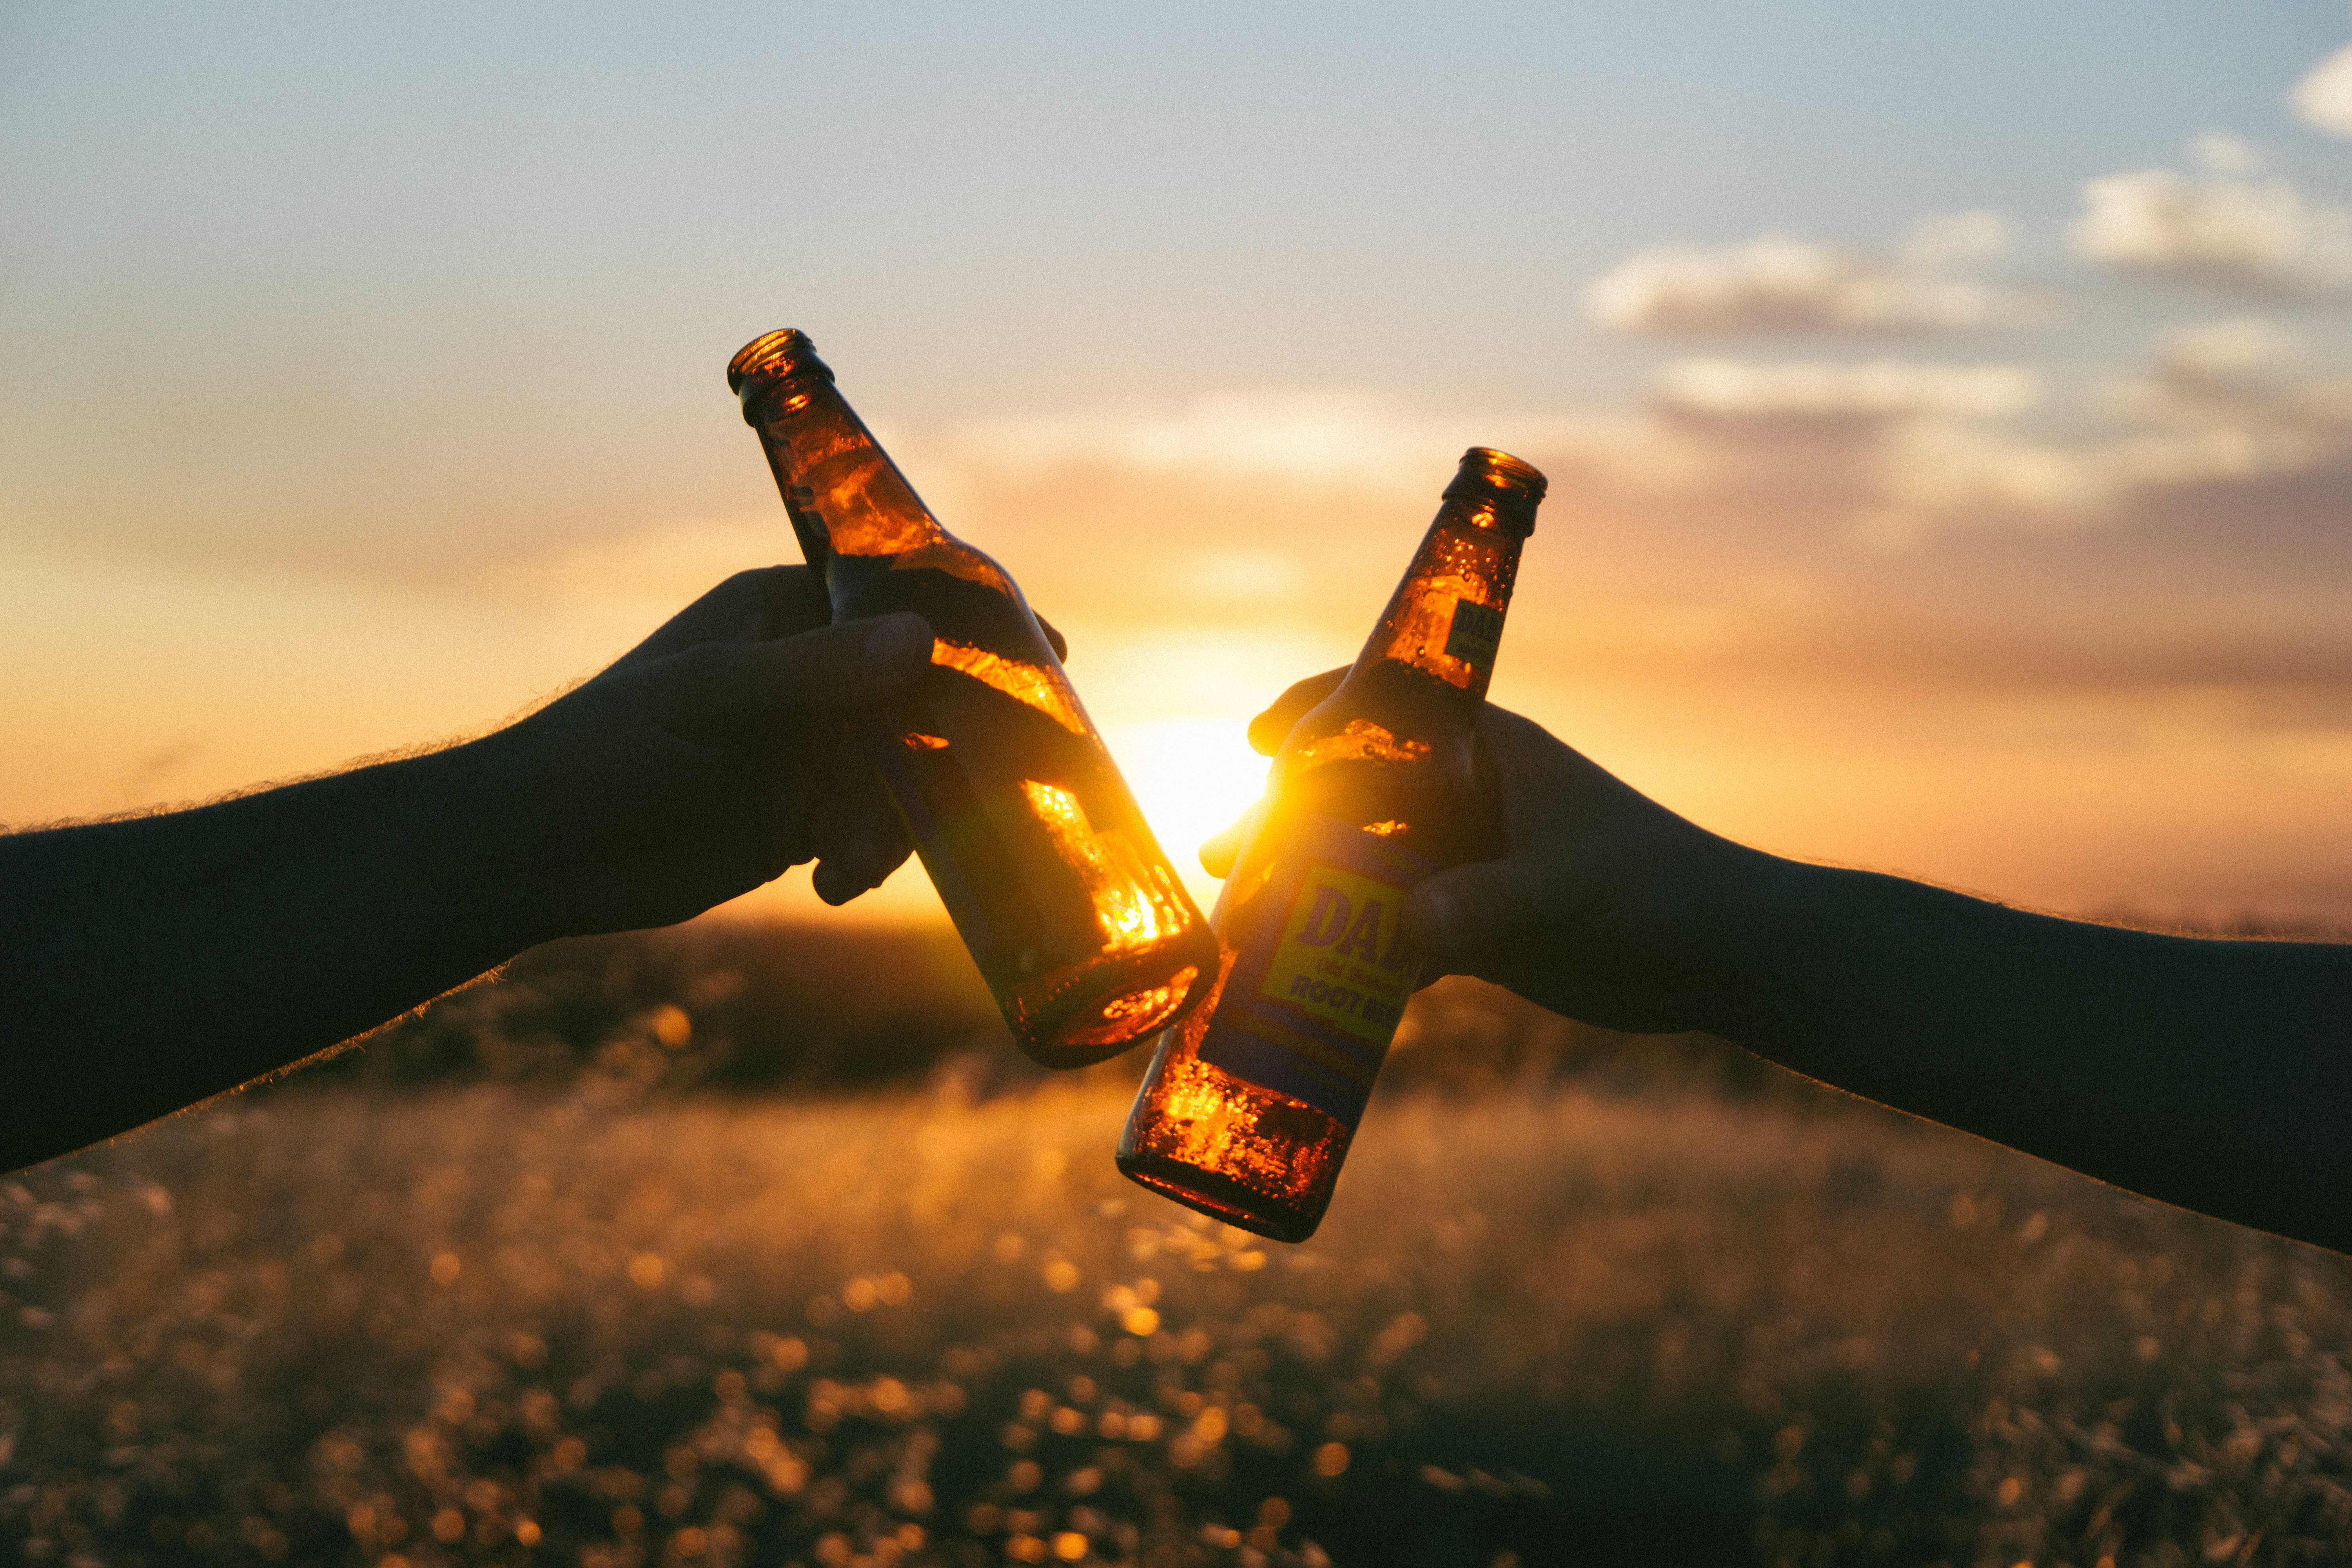 Picture of two beer bottles being clinked in cheers, against the backdrop of a sunset in the countryside